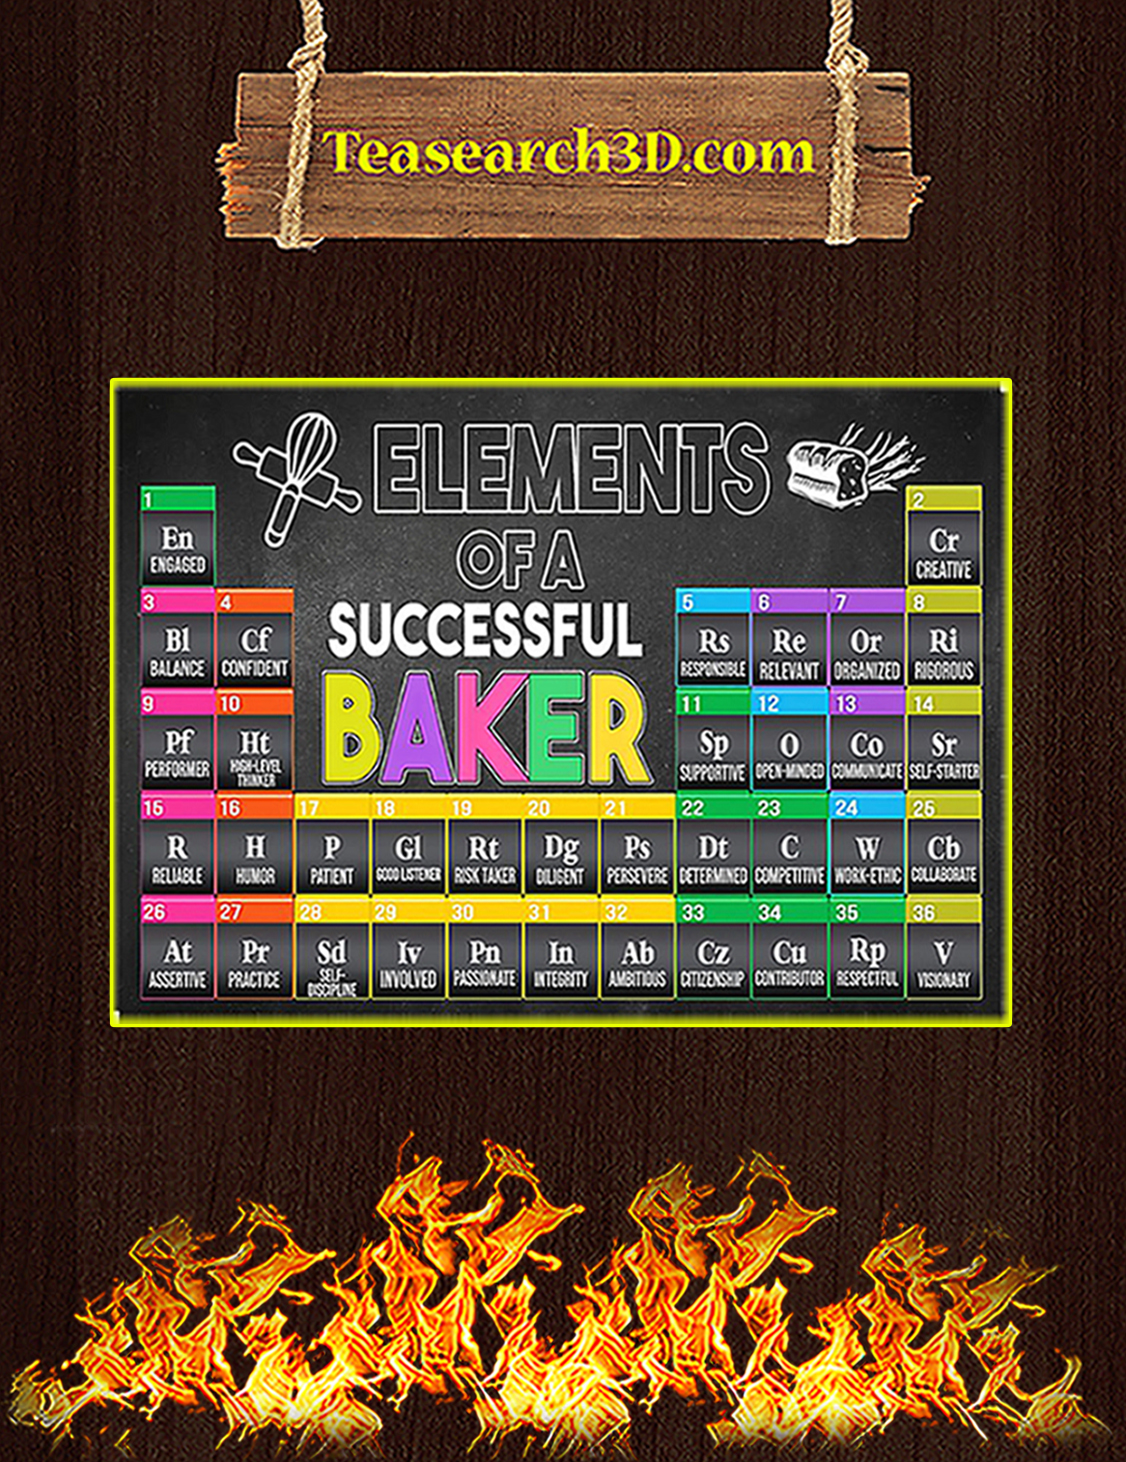 Elements of a successful baker poster A3